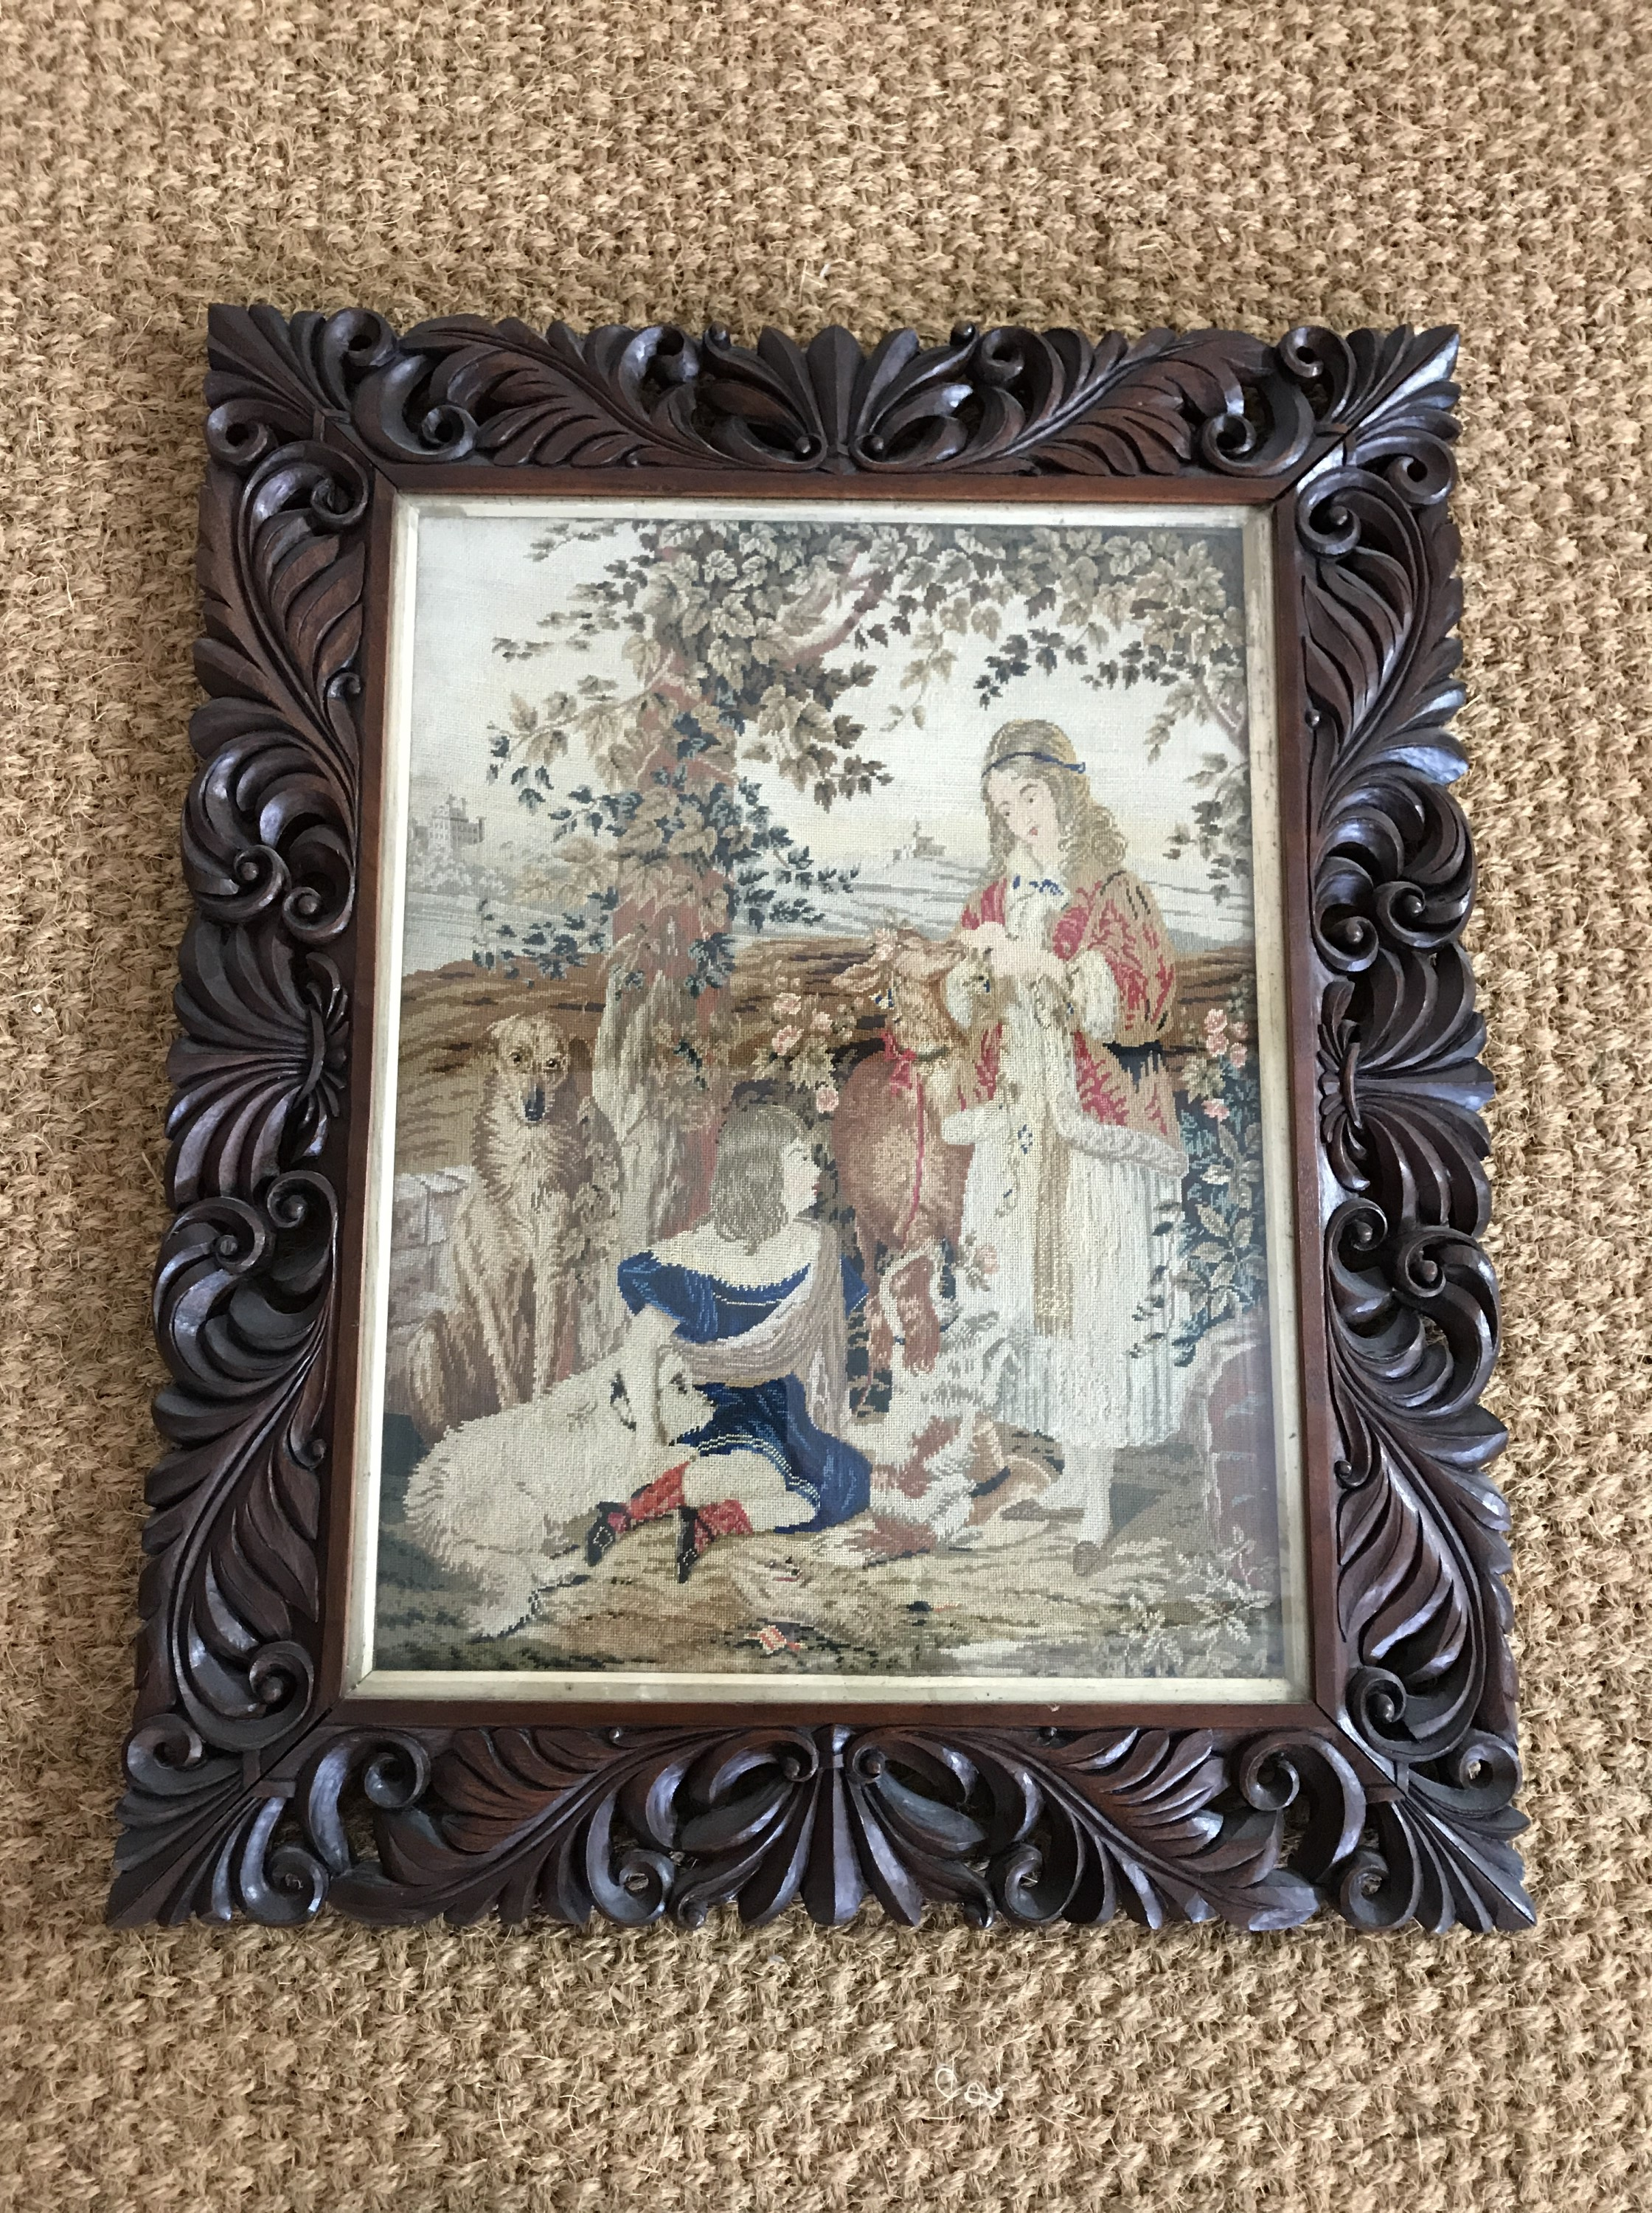 Lot 38 - A Victorian petit point tapestry embroidery of a sentimental scene, depicting children and dogs in a